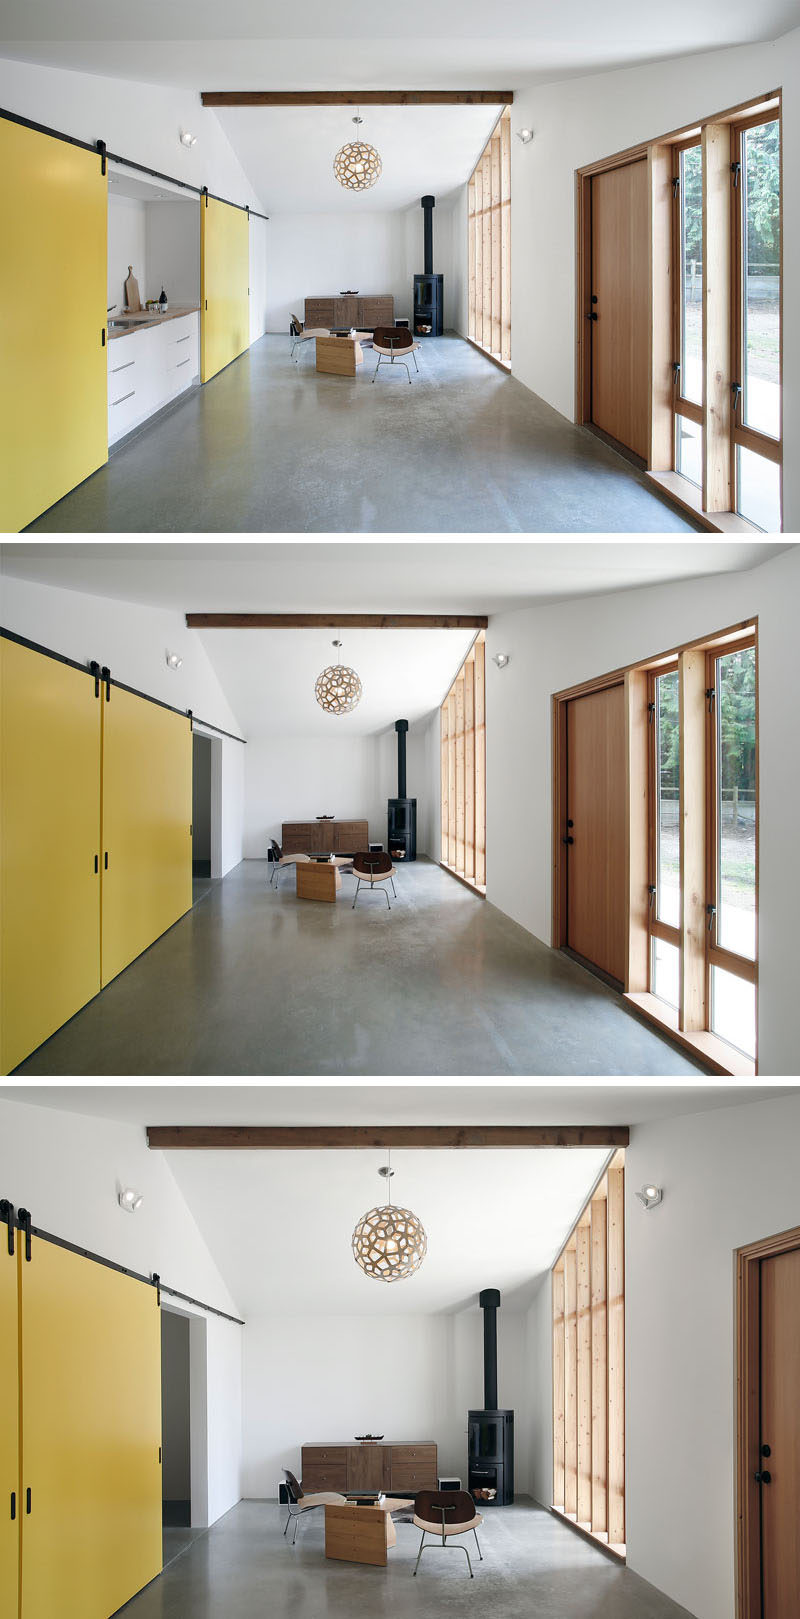 Yellow sliding barn doors run the length of this guest house, allowing sections to be closed off when needed.